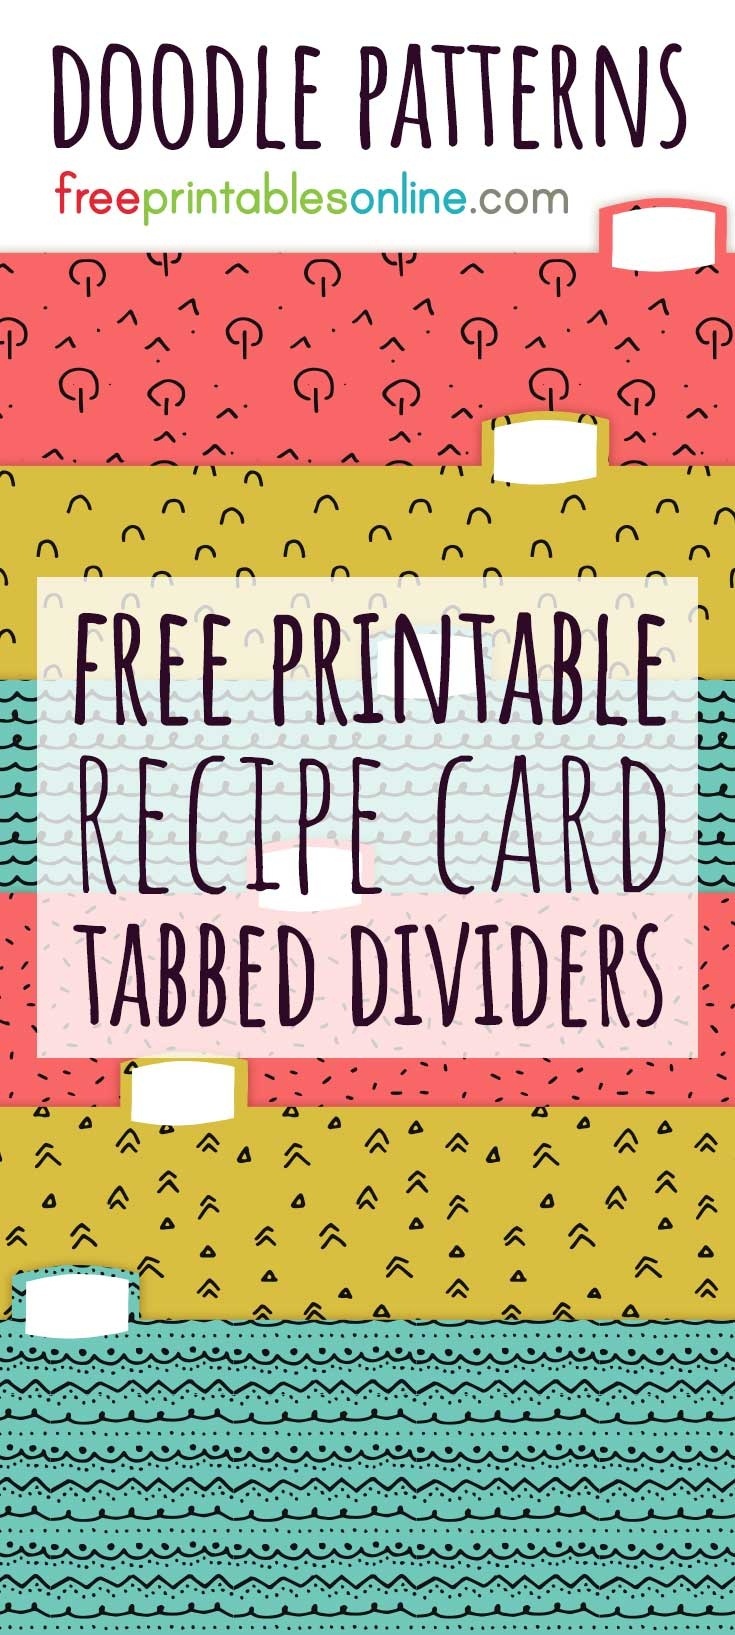 Doodle Patterns Recipe Card Box Dividers - Free Printables Online - Free Printable Recipe Dividers